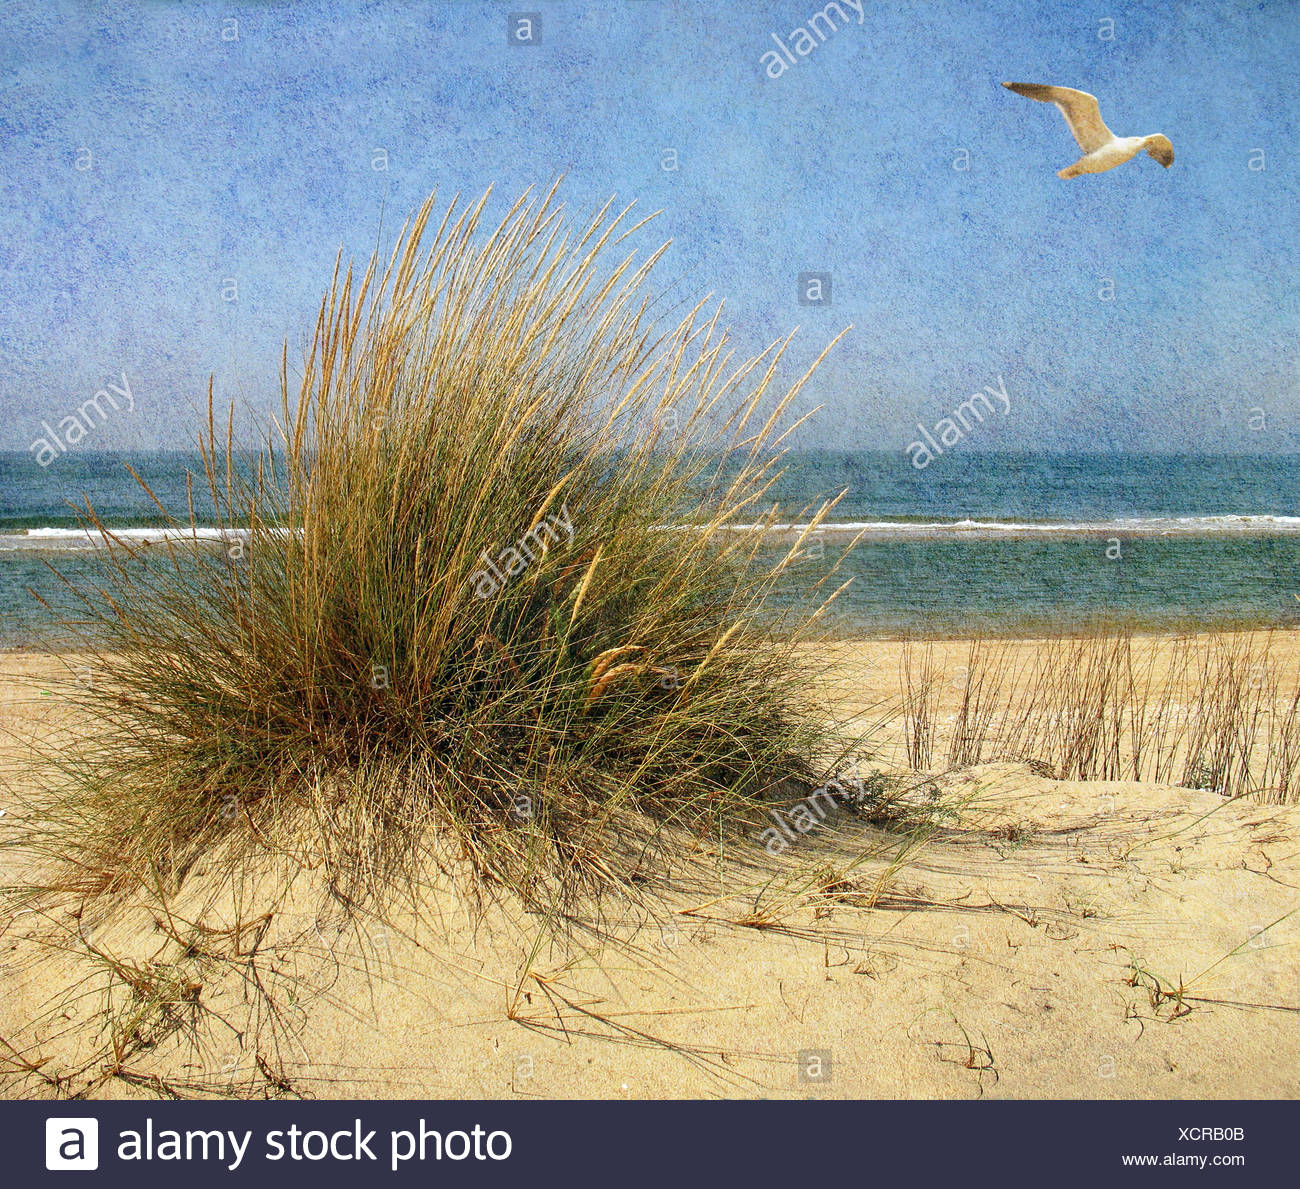 A seagull flying above a beach - Stock Image